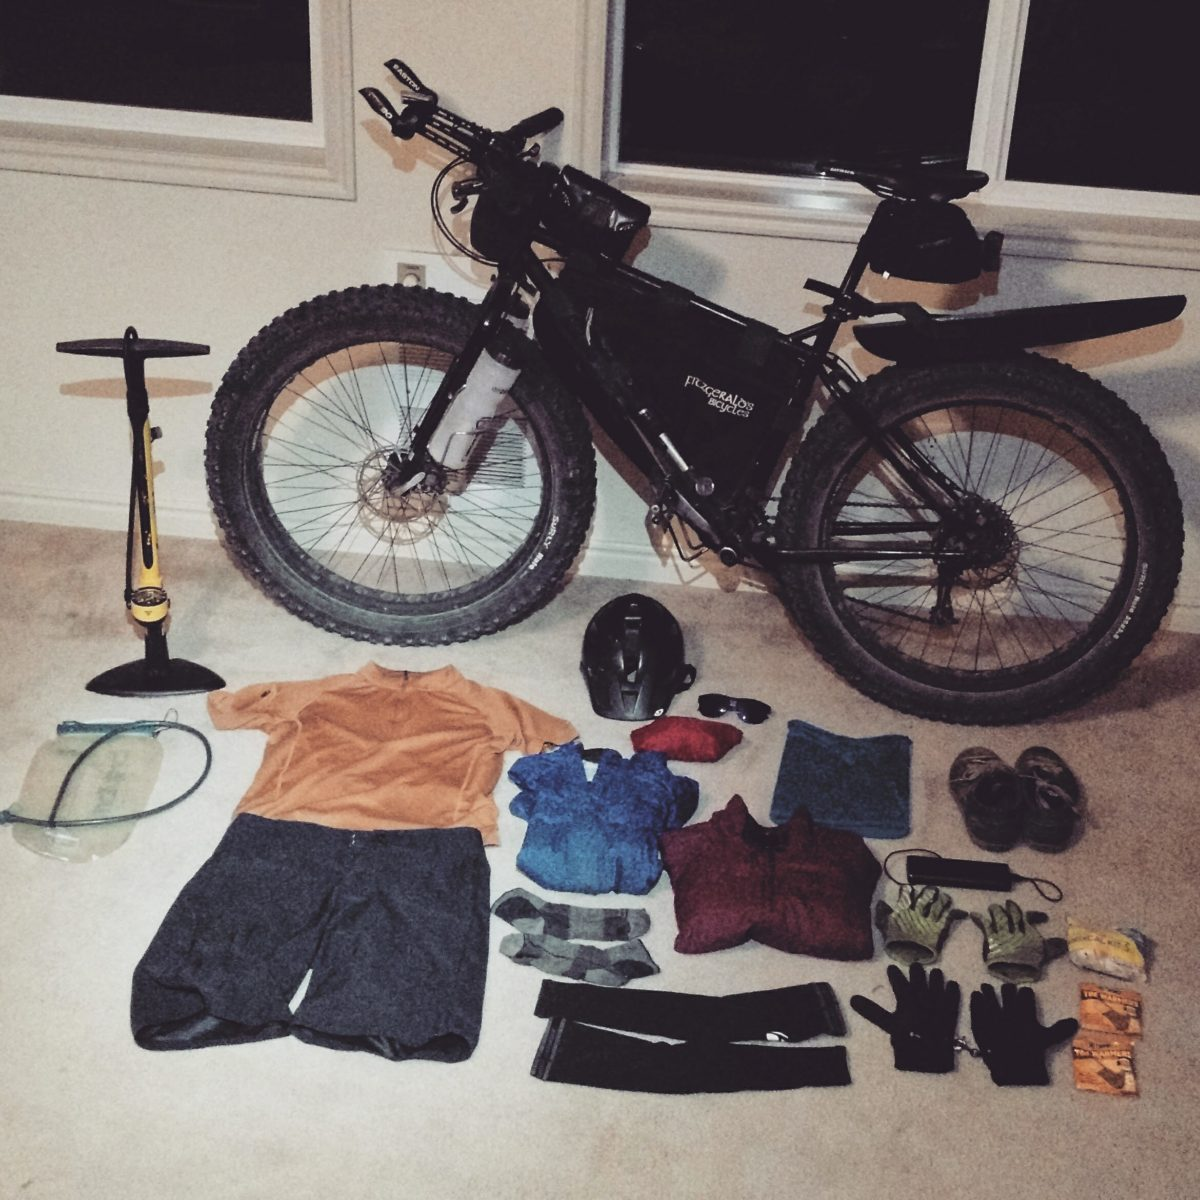 All the gear carried during the race, minus the floor pump.